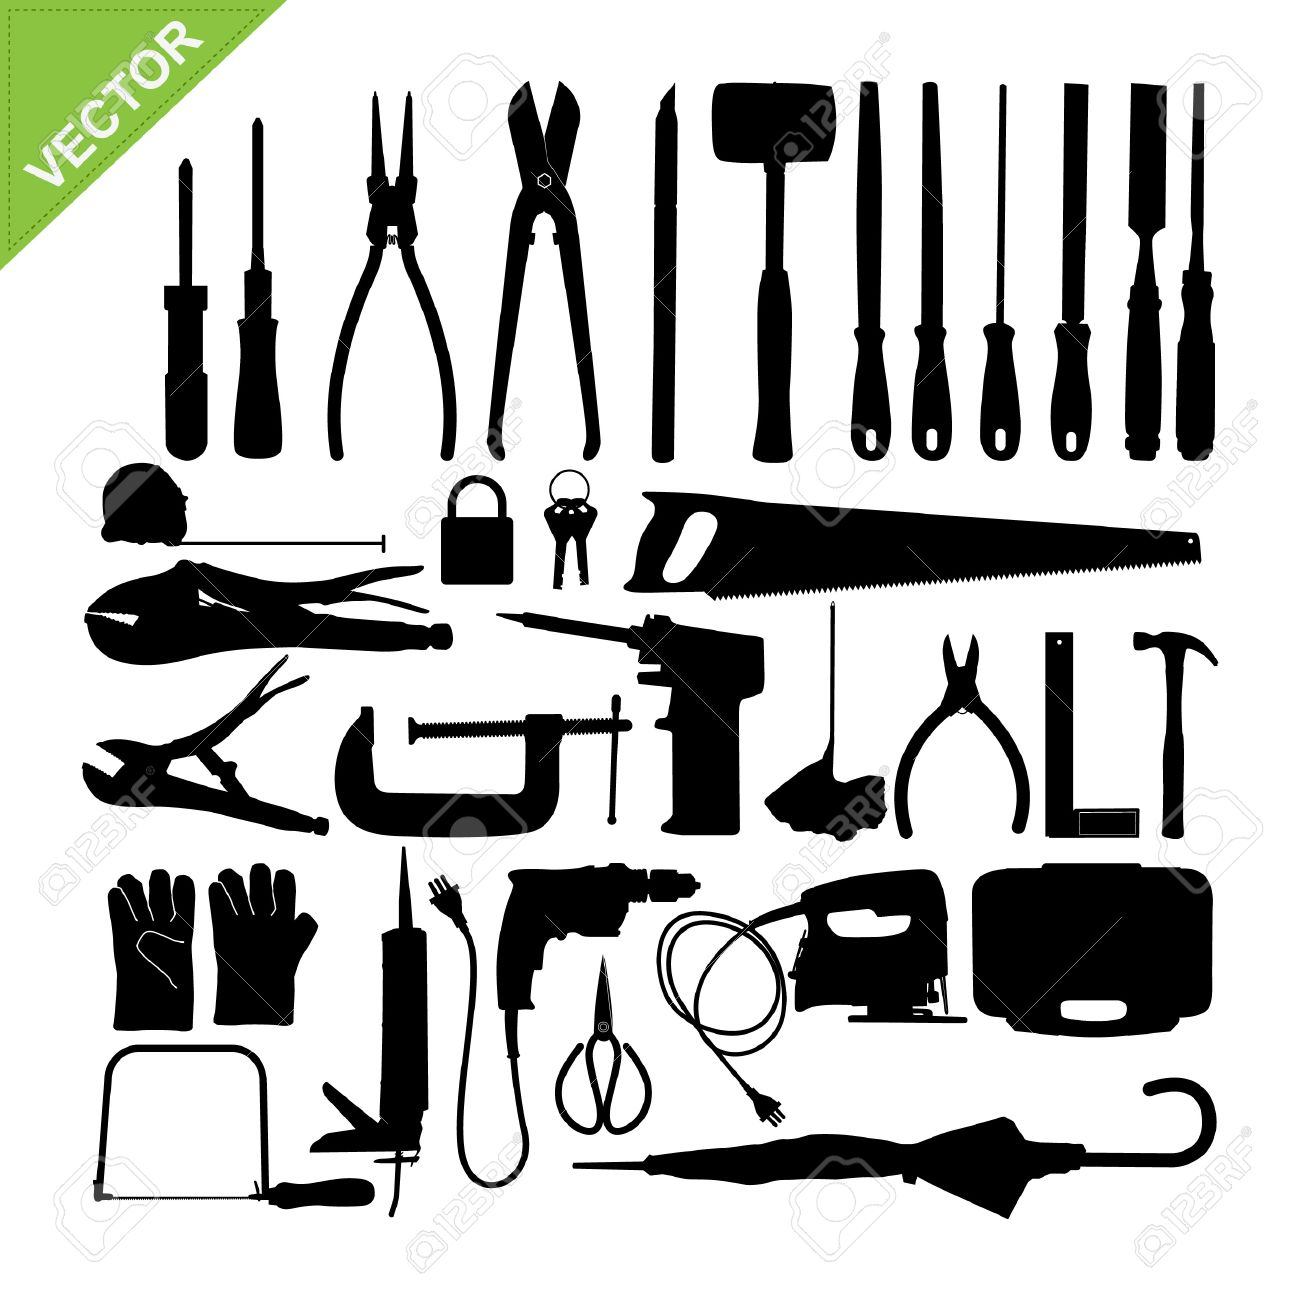 Set Of Tools Silhouette Vector Stock